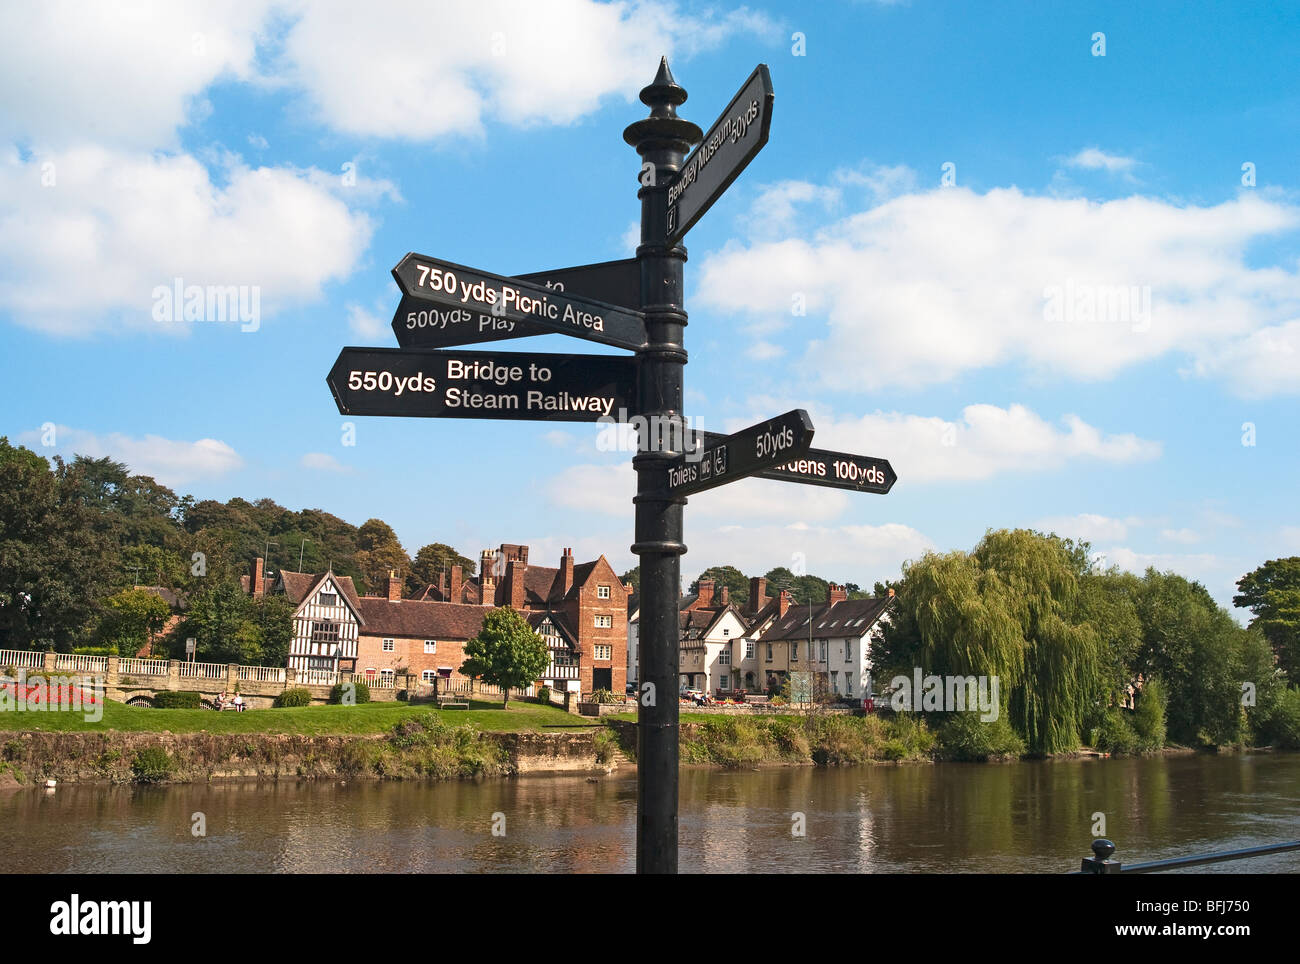 Tourism signpost in Bewdley Worcestershire England UK EU - Stock Image